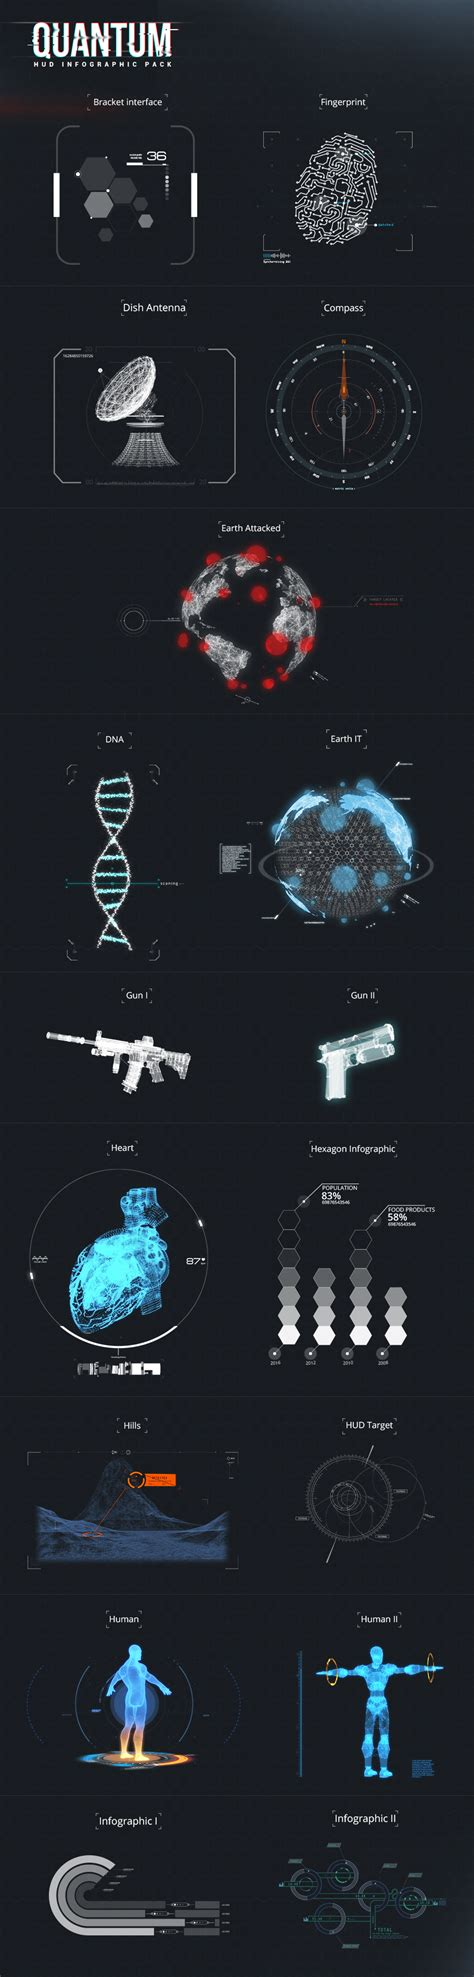 after effects template free phantom hud infographic quantum hud infographic wooenvato demo